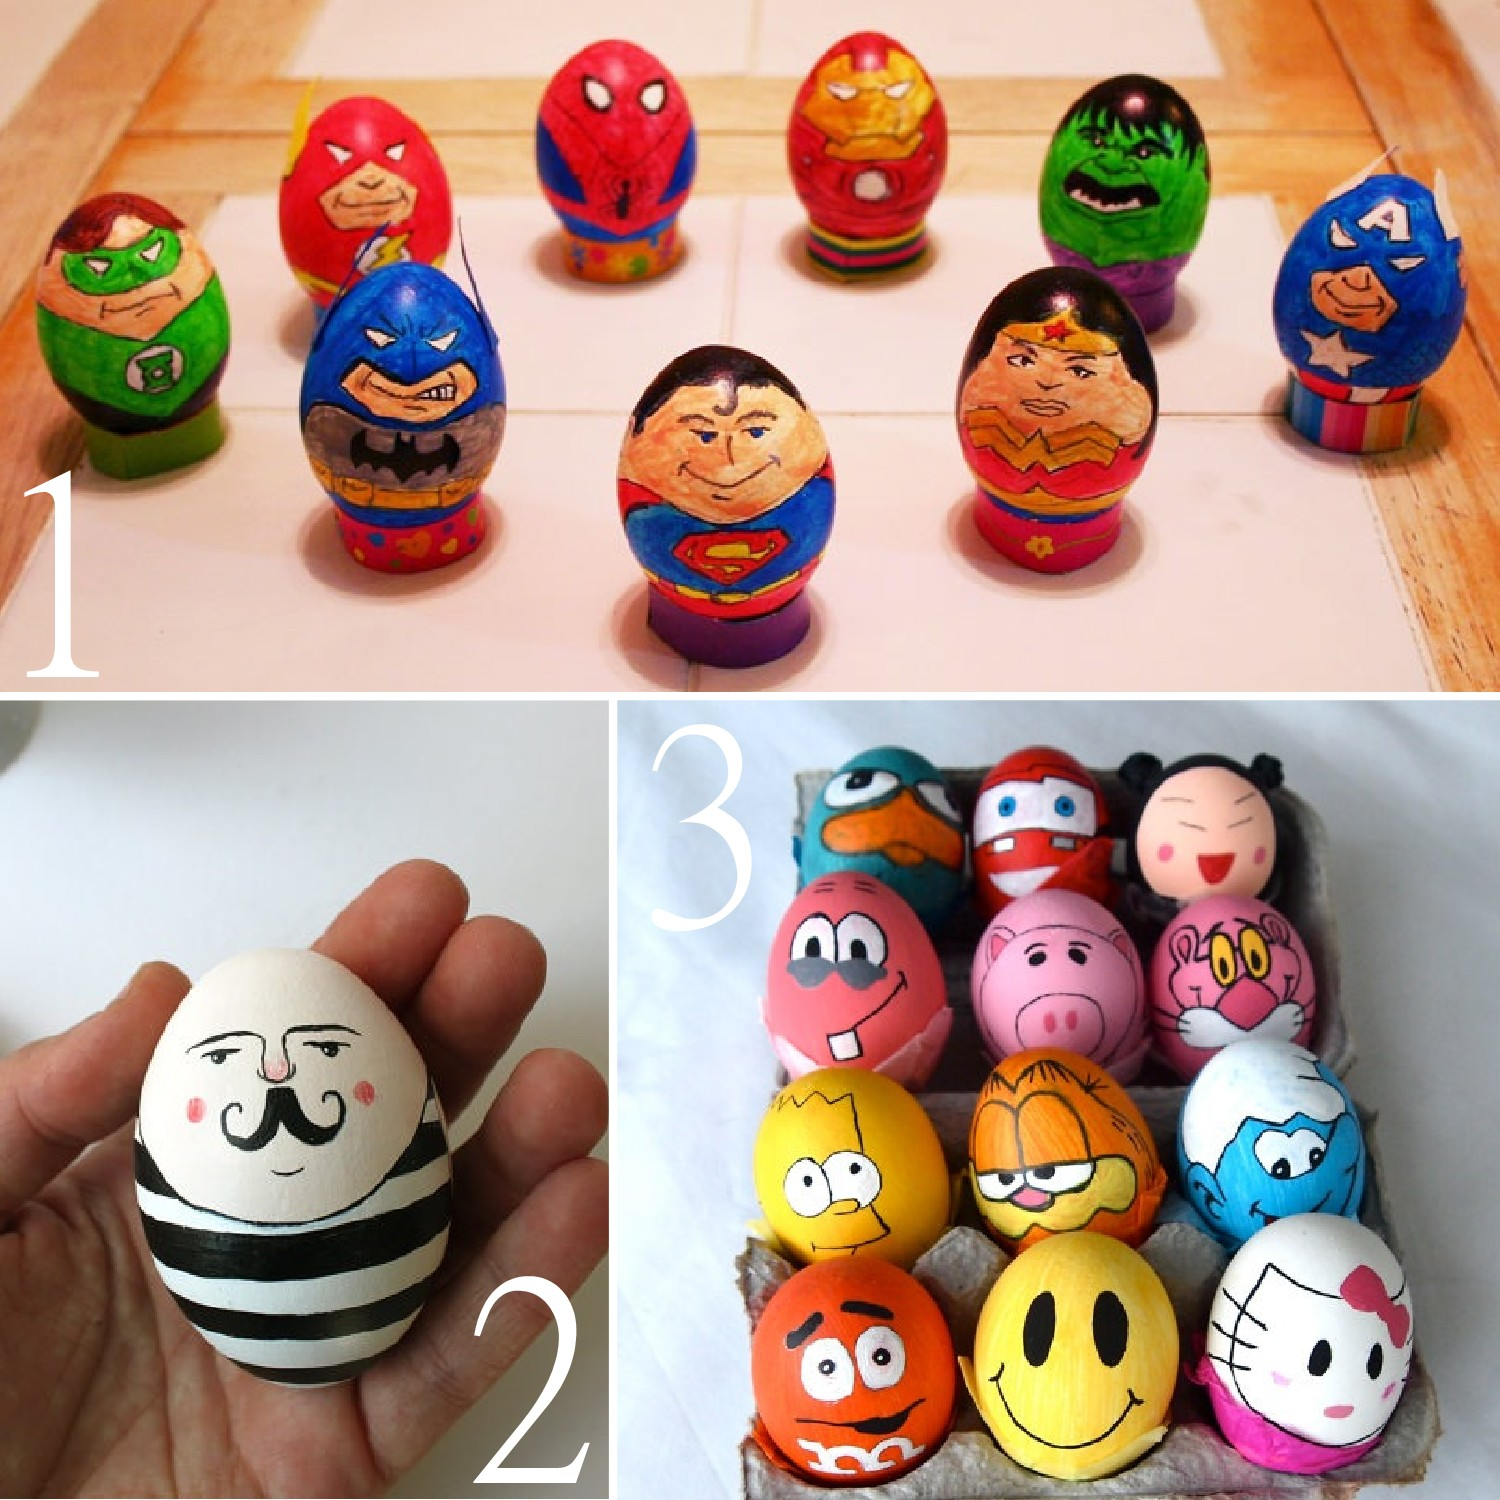 17 unusual easter egg character ideas the scrap shoppe for Easter egg ideas